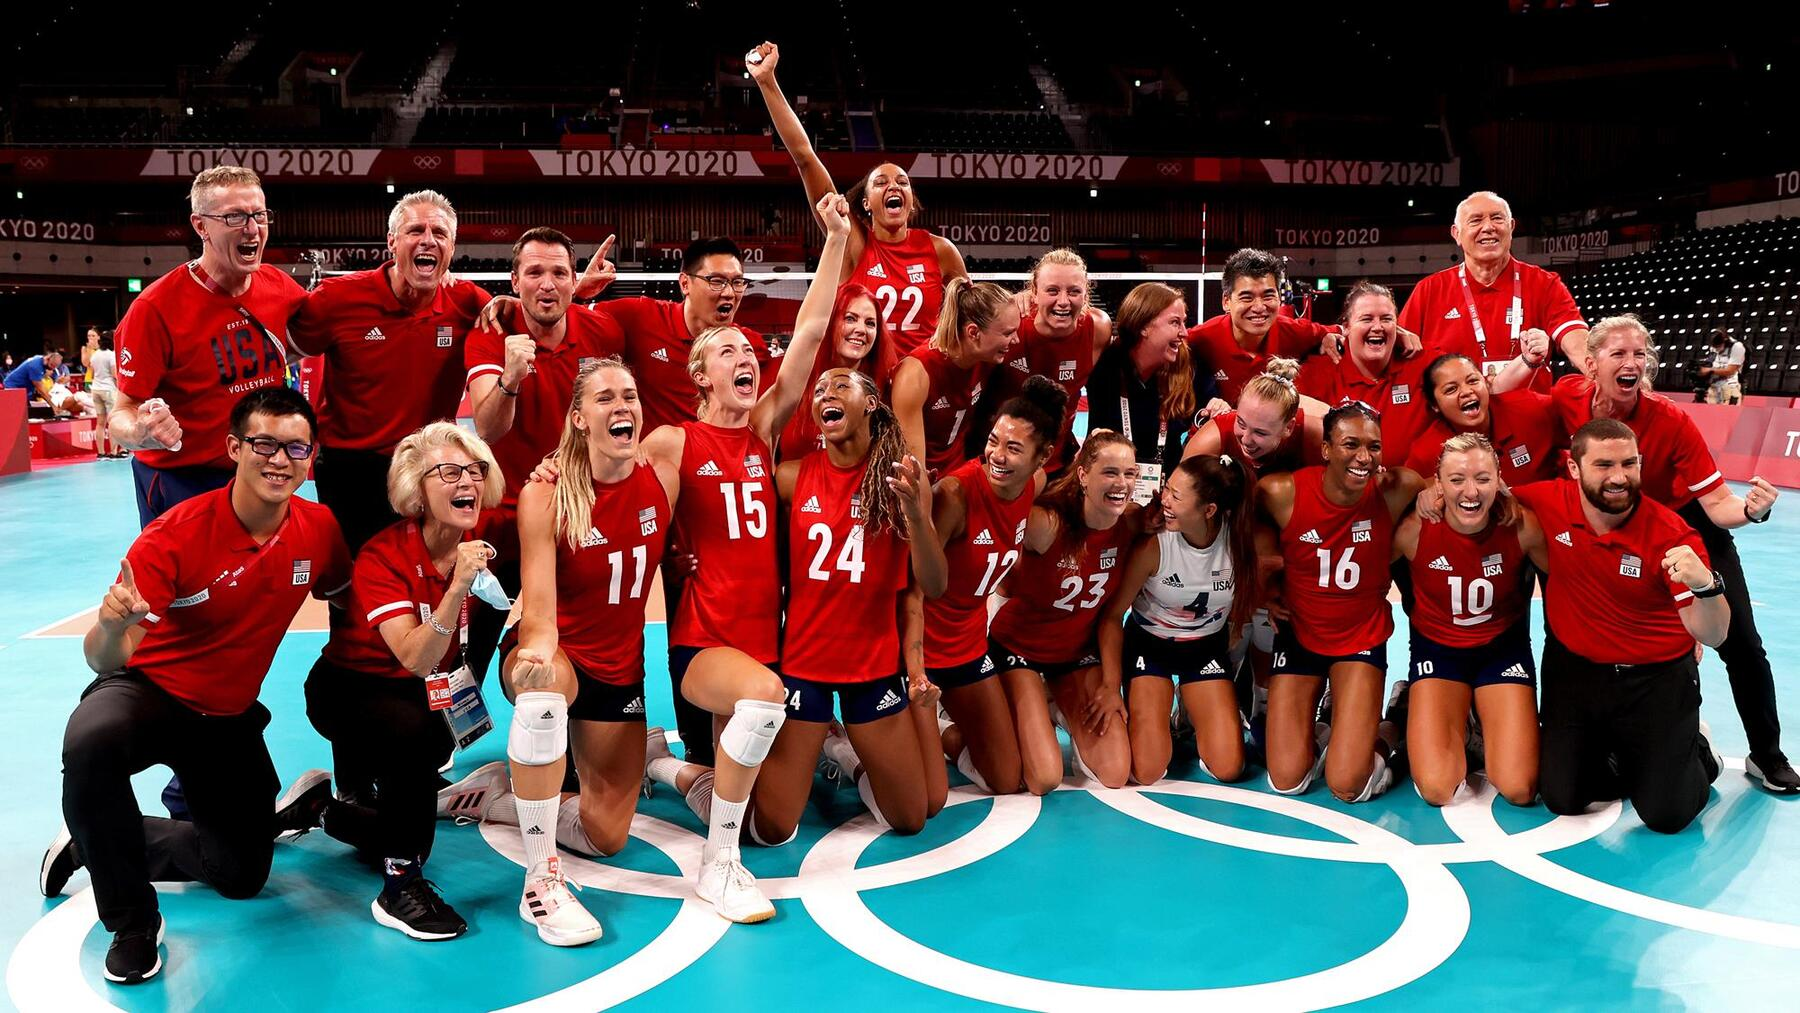 Olympic team photo after winning gold